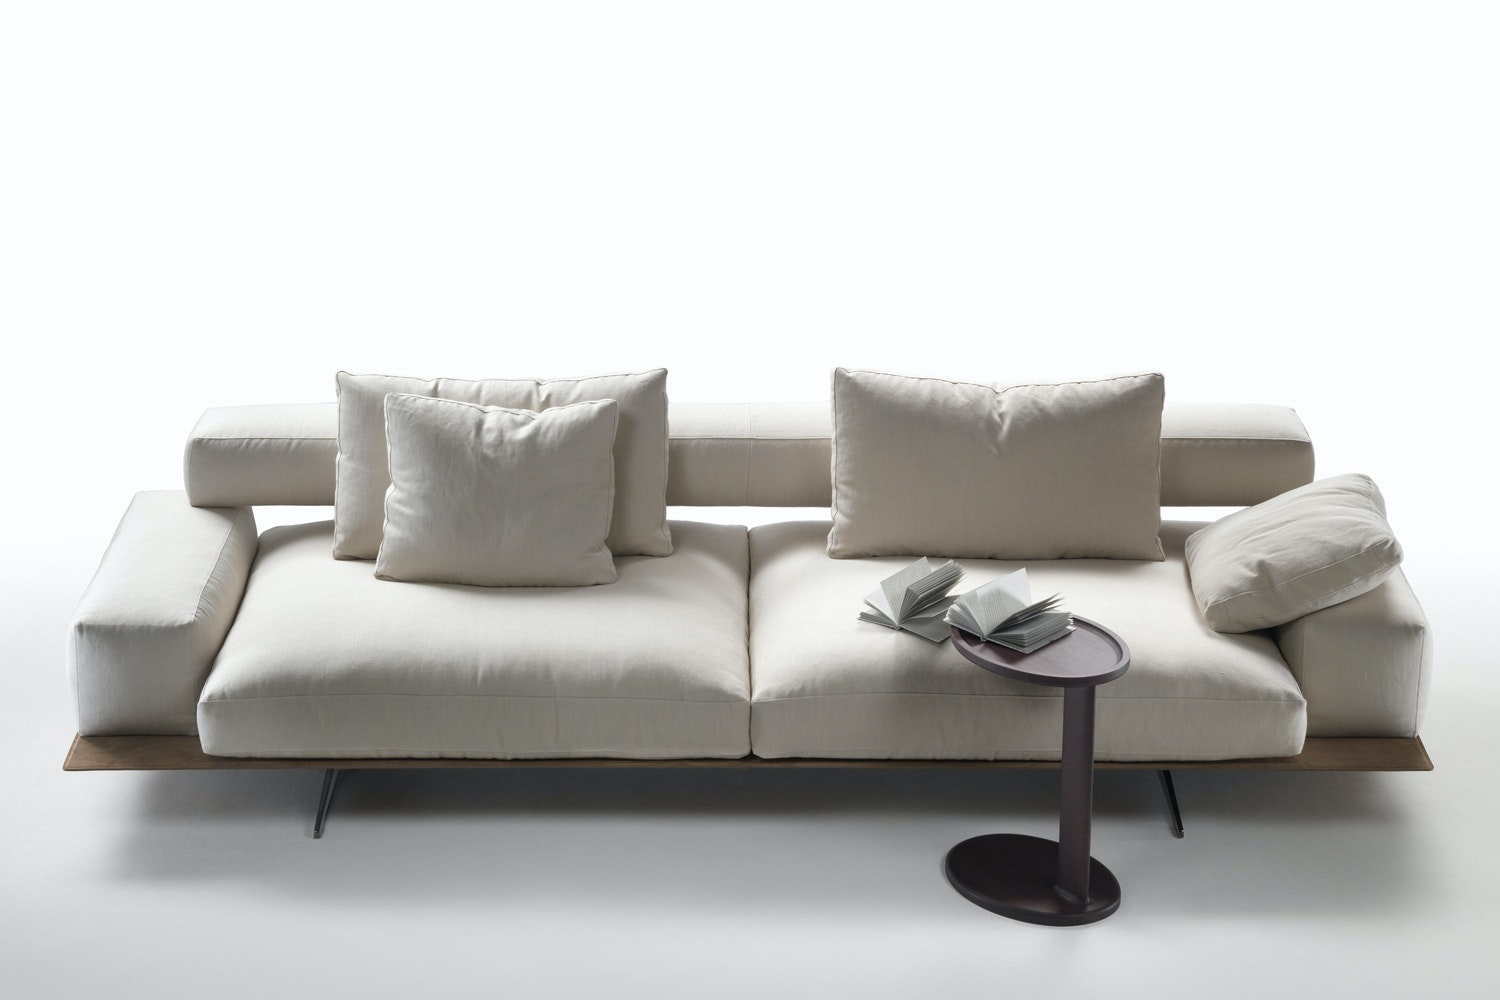 Wing Sofa by Antonio Citterio for Flexform